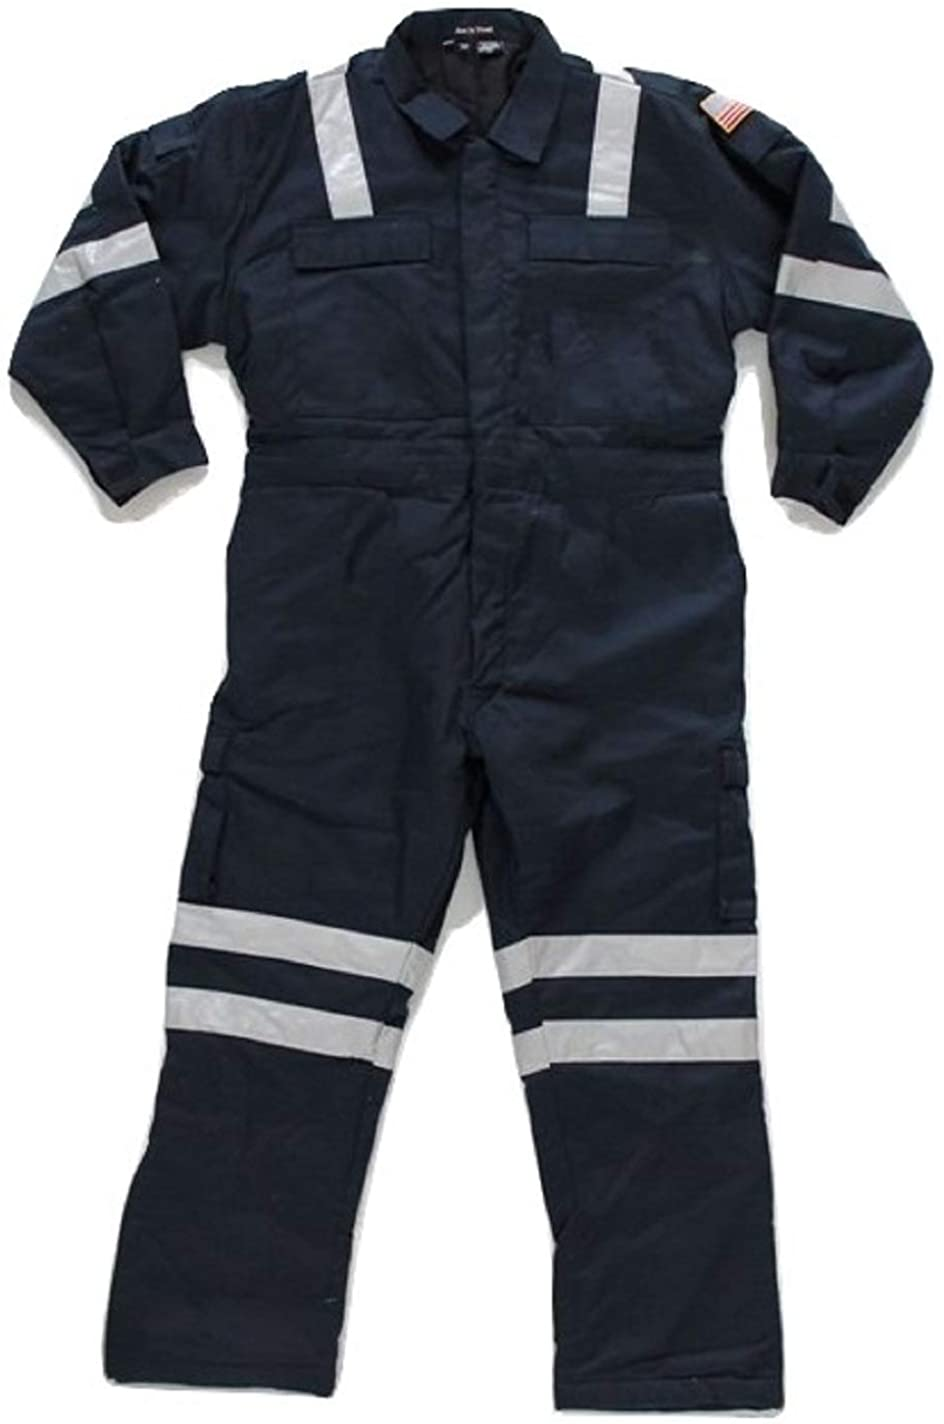 Premium High Visibility Hi Vis Coveralls with Leg Zipper